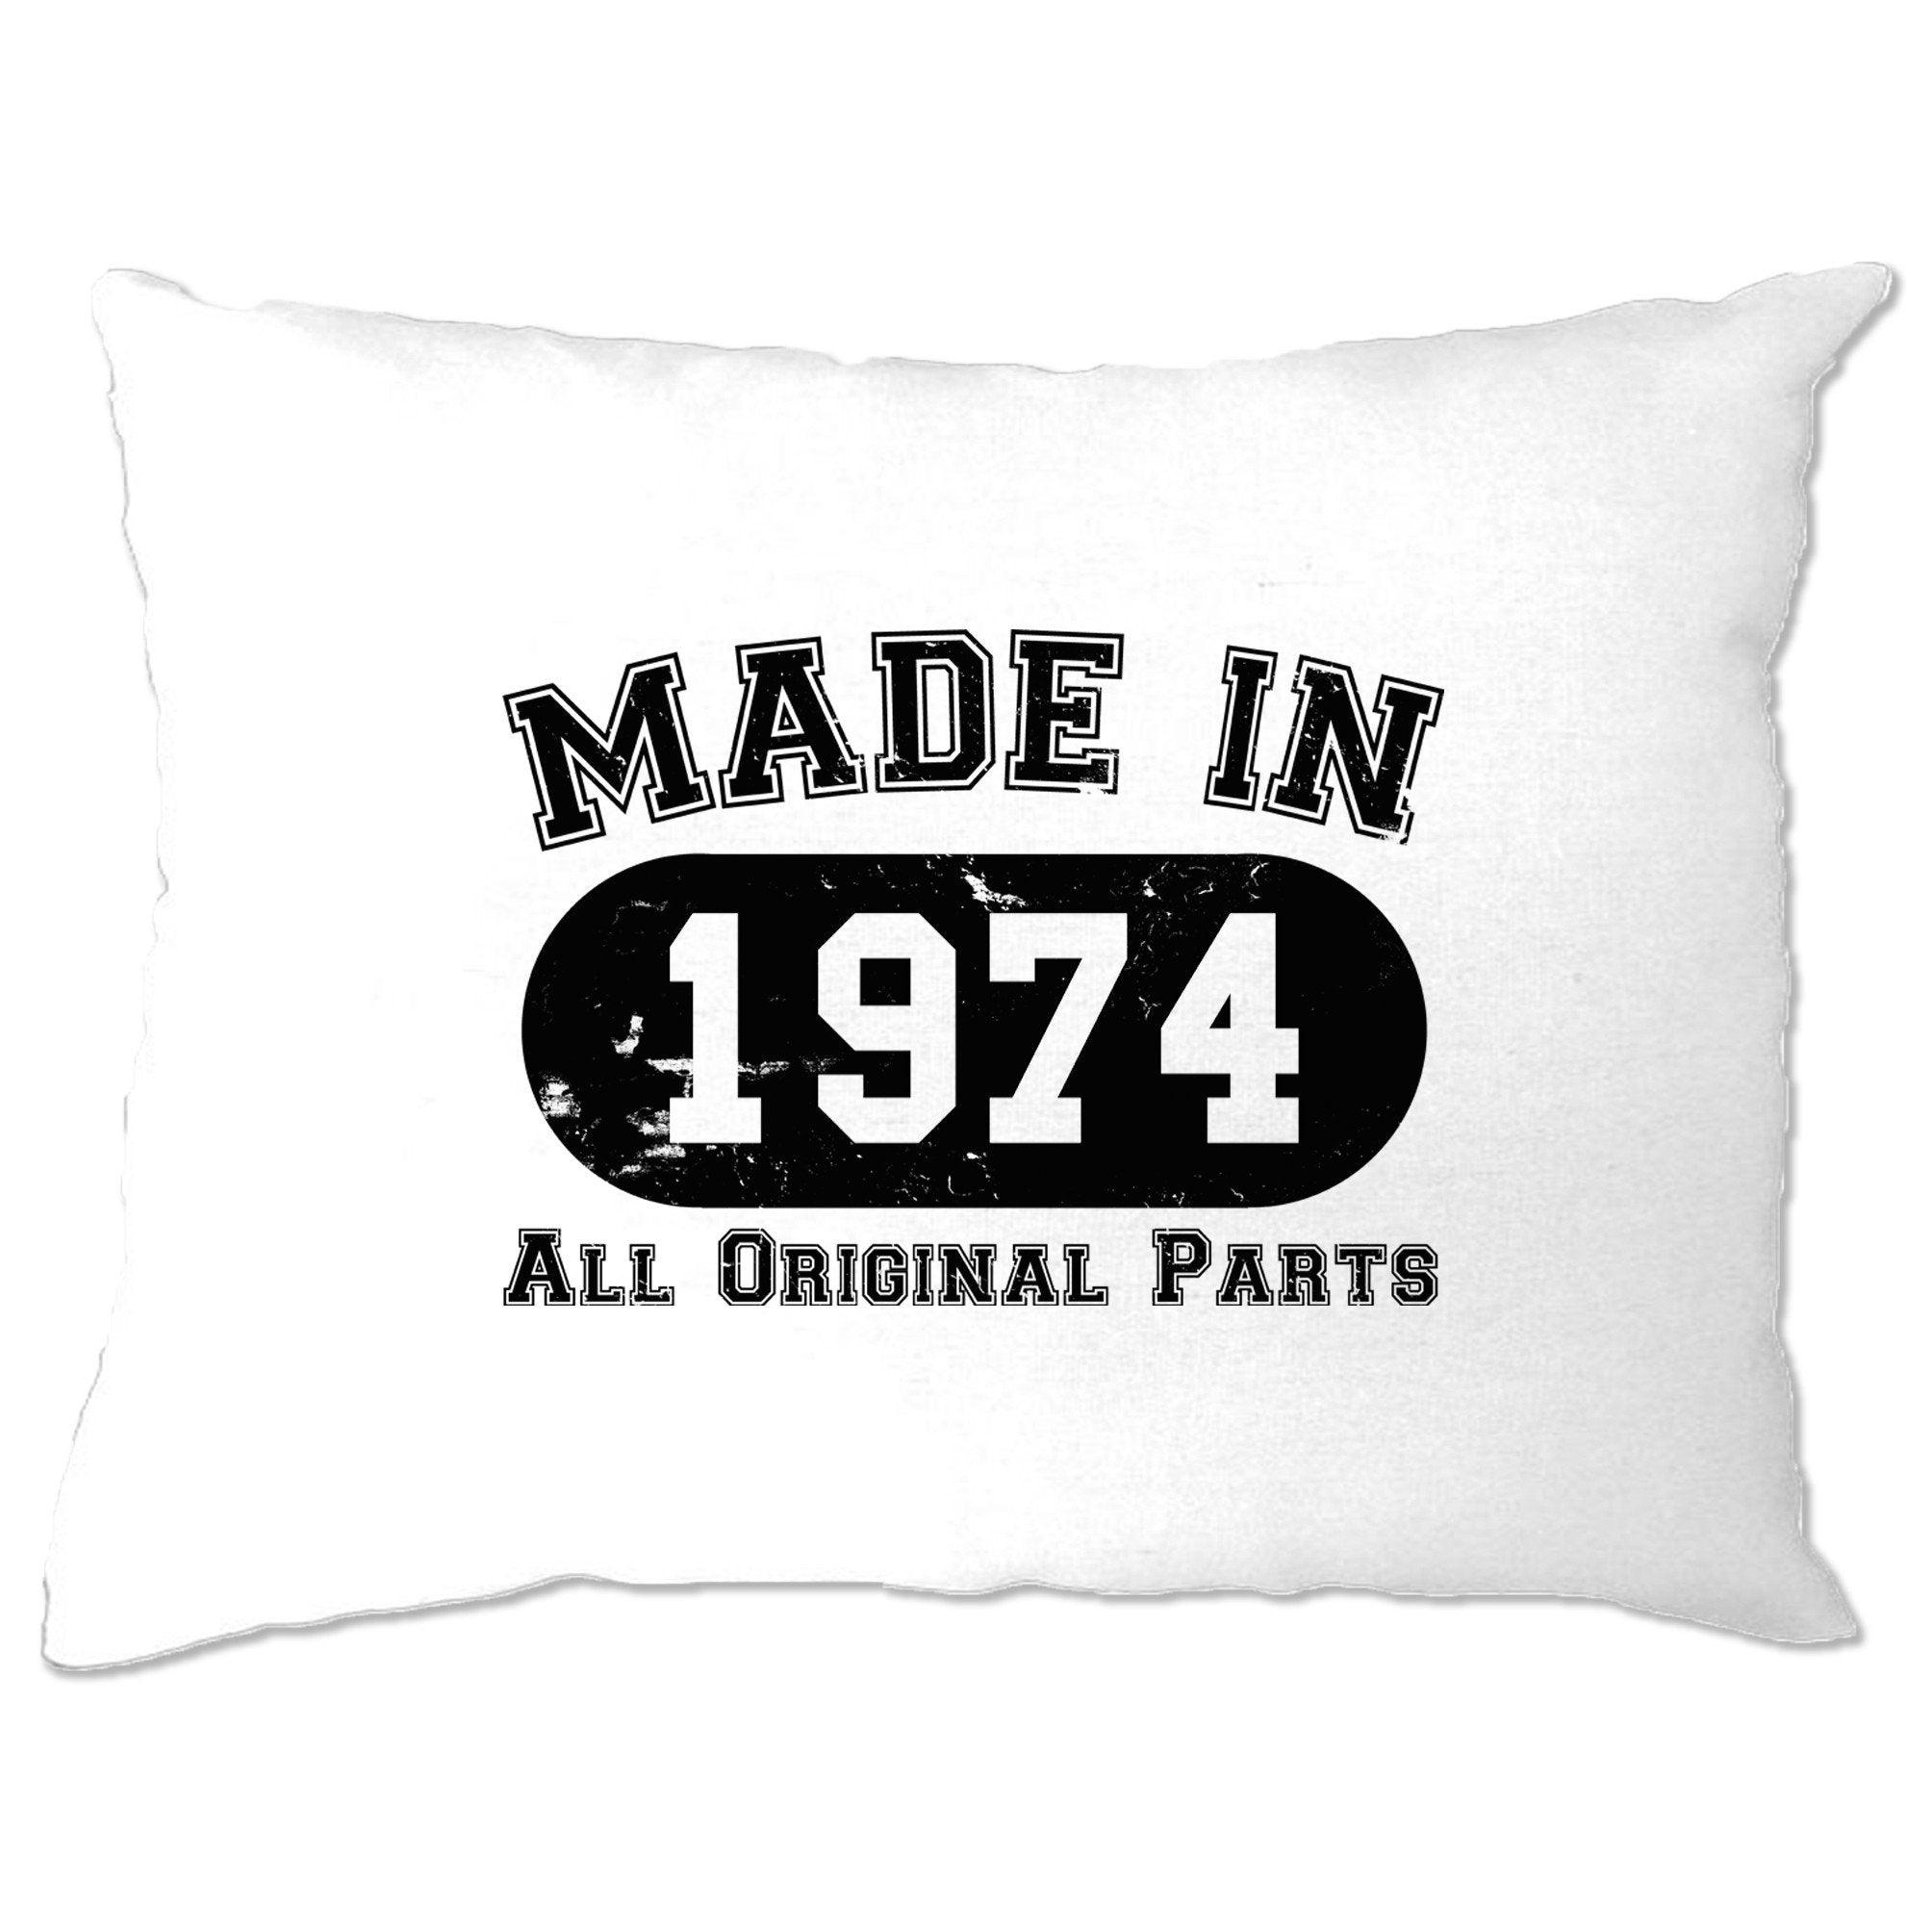 Made in 1974 All Original Parts Pillow Case [Distressed]